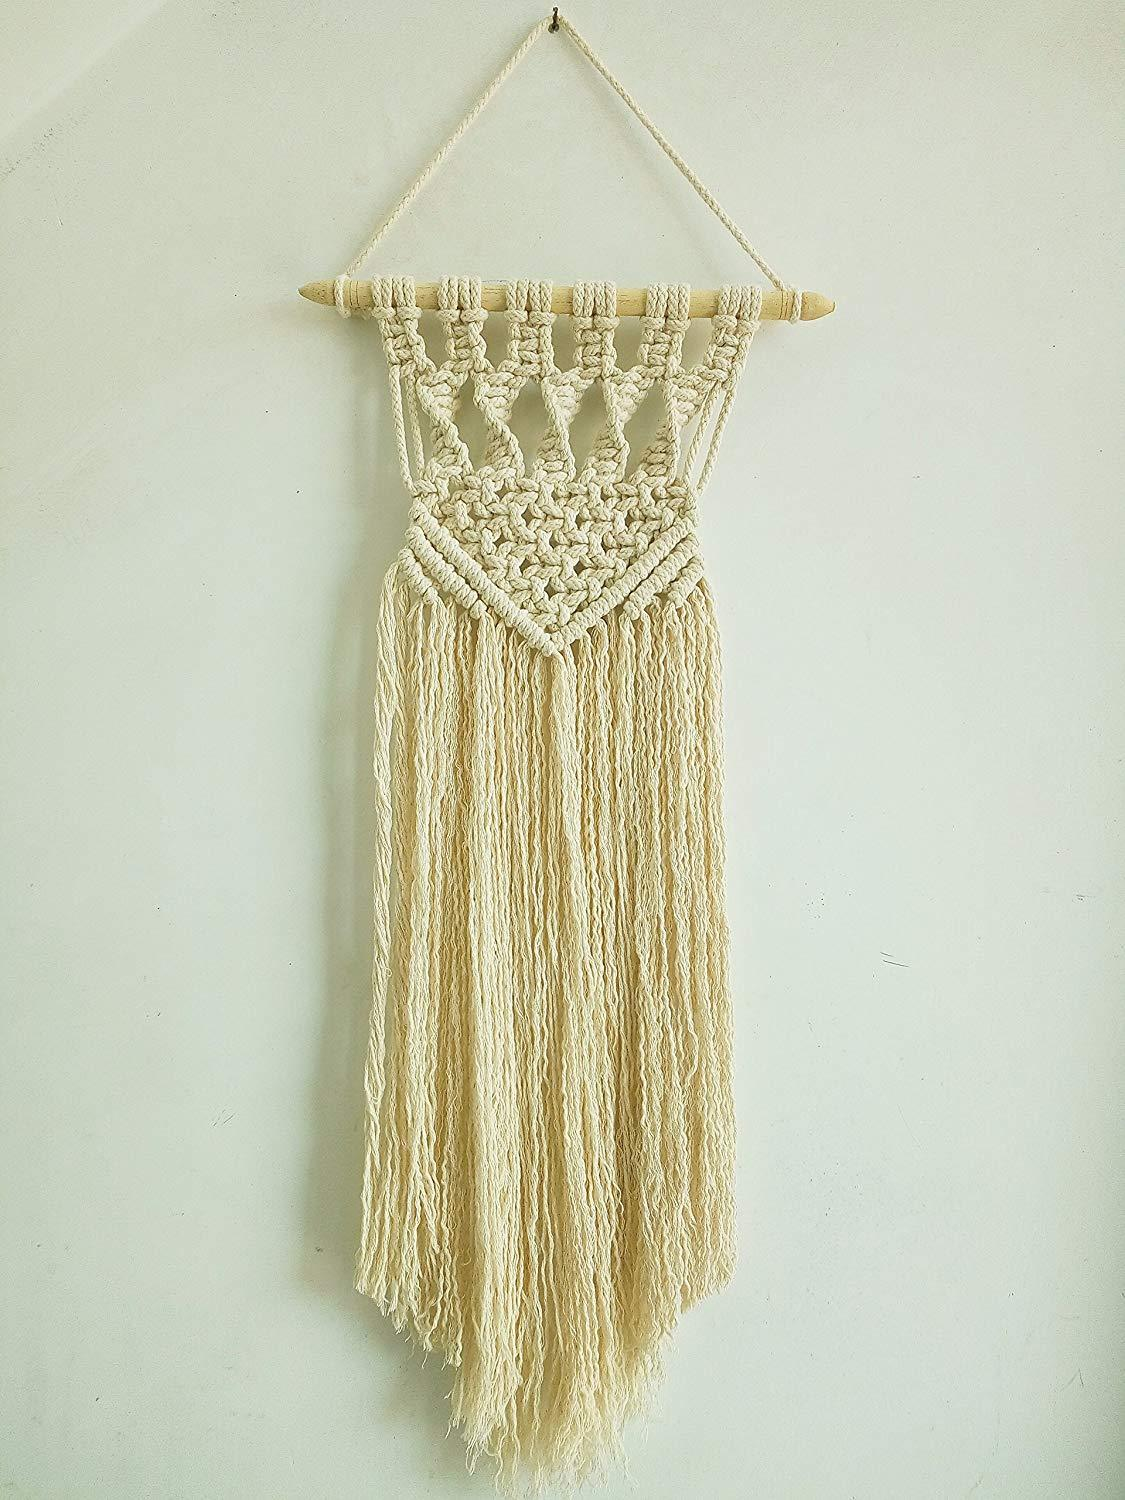 Macrame Fringed Wall Hanging